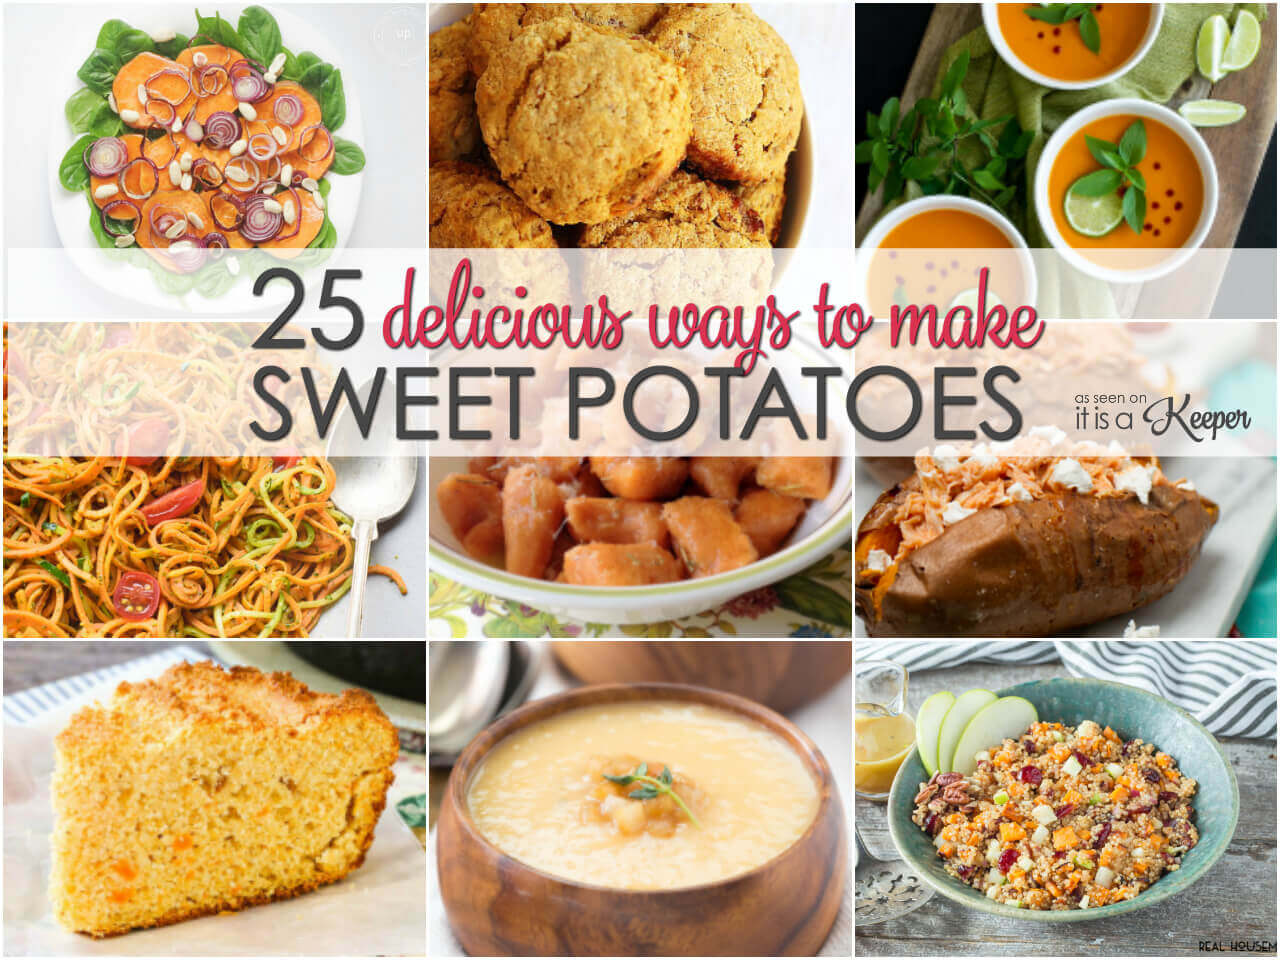 25 delicious ways to make sweet potatoes